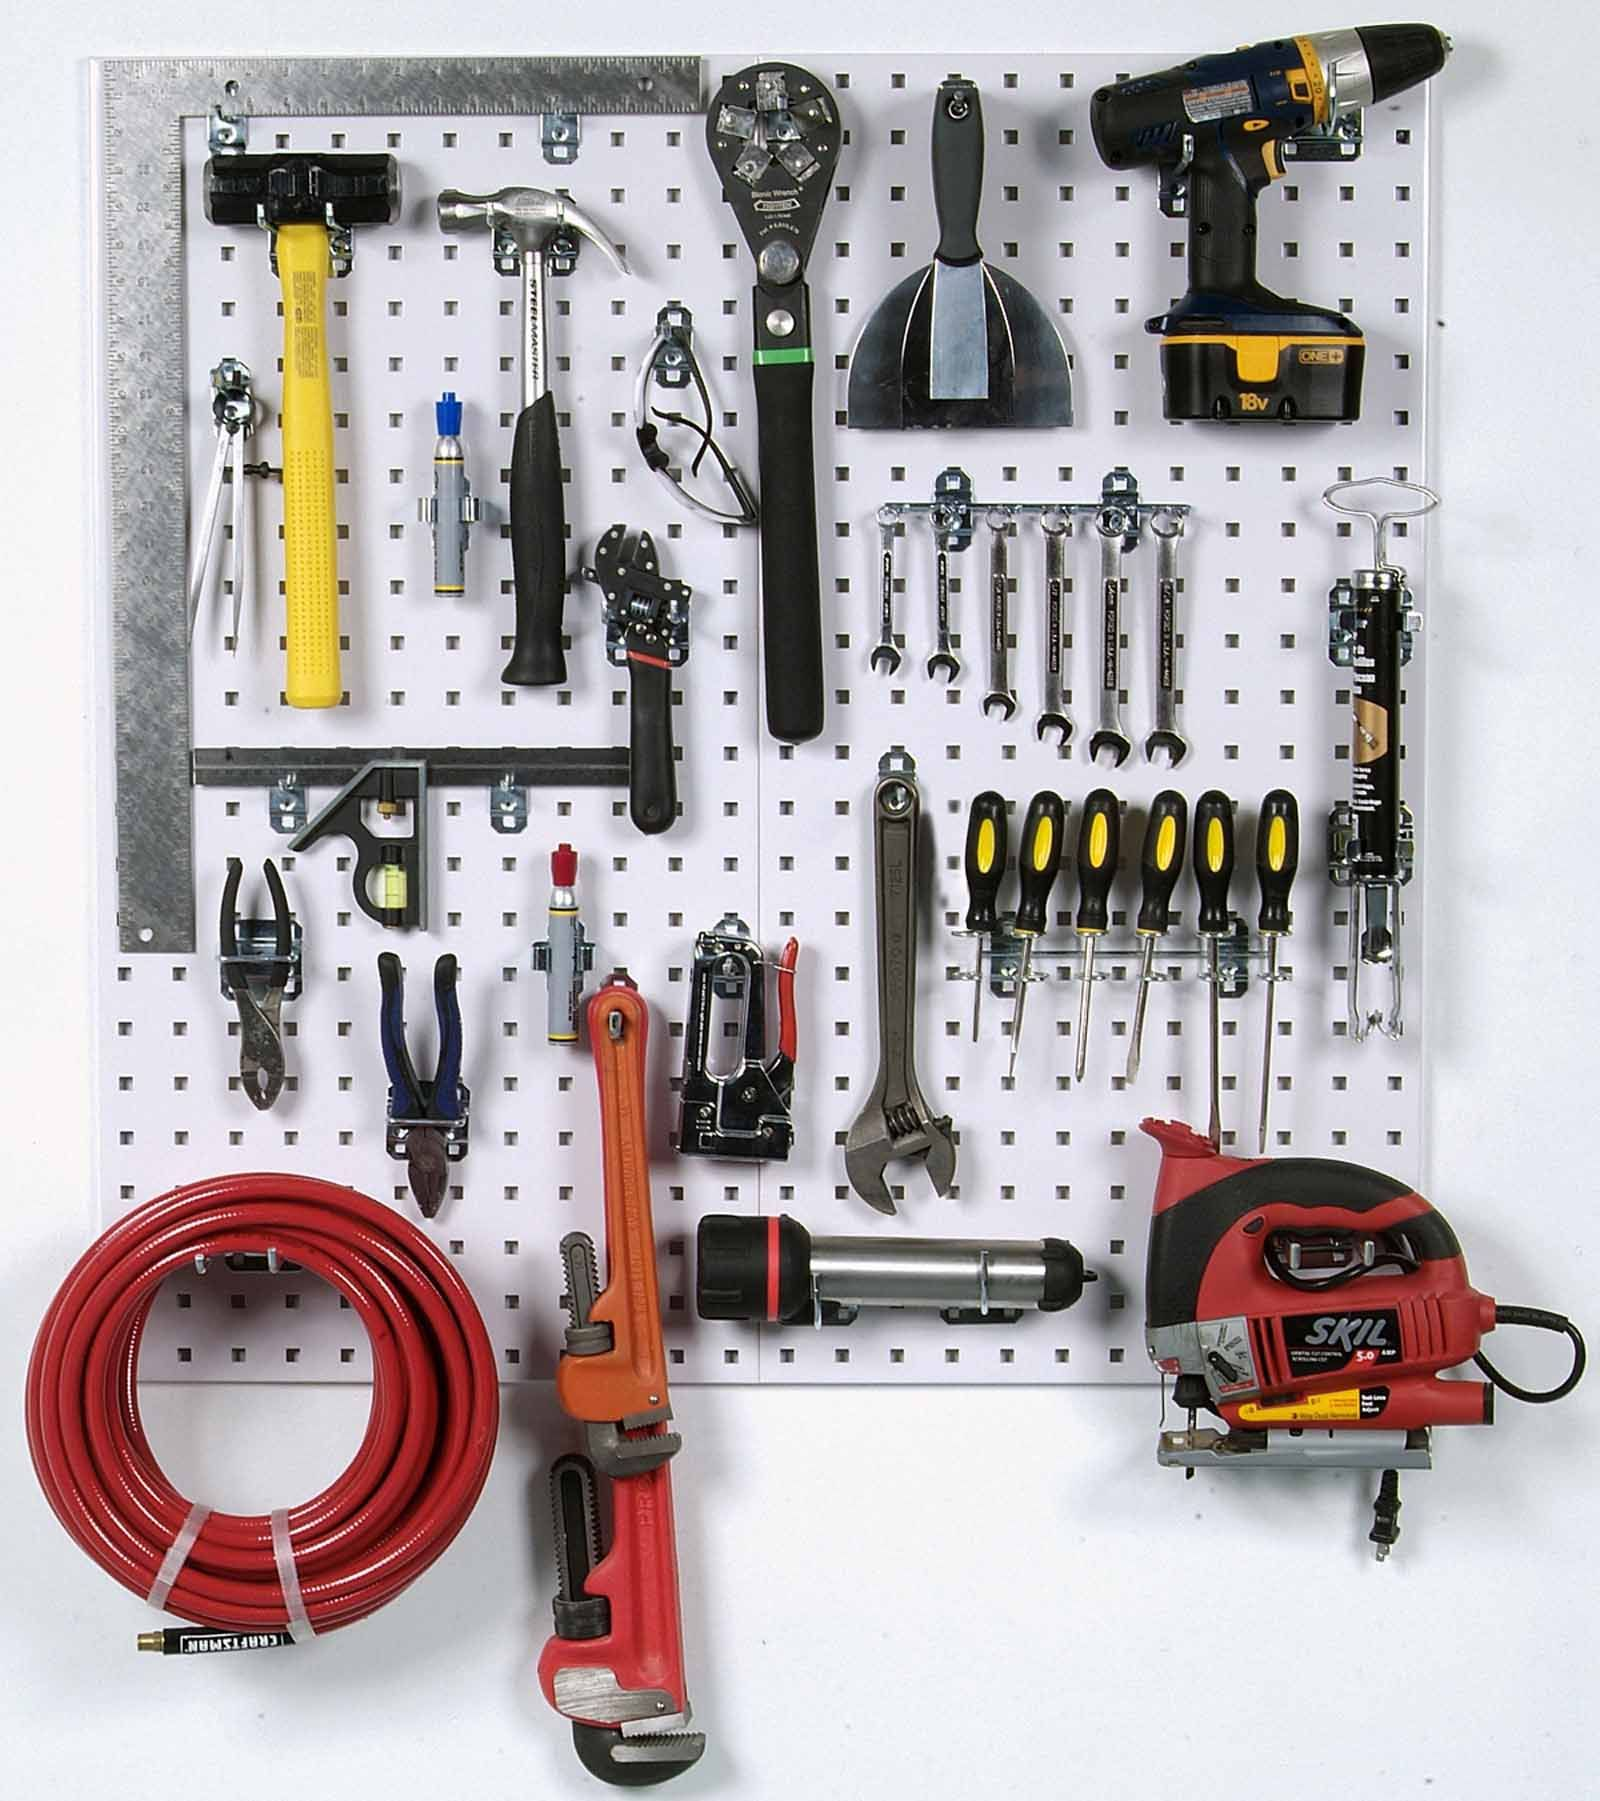 Triton Products Locboard Wall System Square Hole Pegboard And Locking Hook Organizer Walmart Com In 2021 Pegboard Organization Pegboard Storage Peg Board